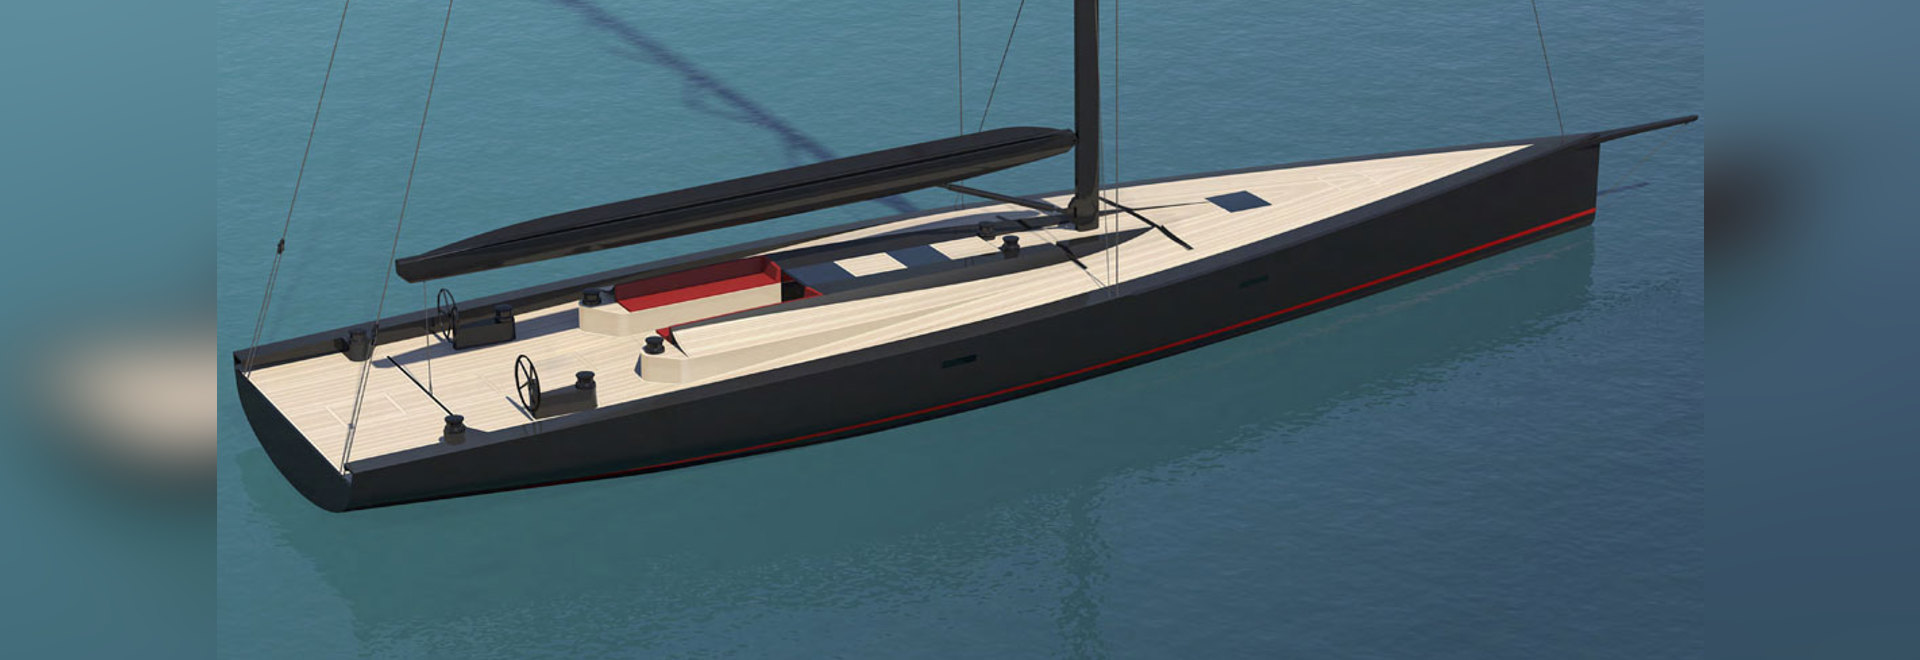 News: New WallyCento Superyacht P100 concept by Philippe Briand